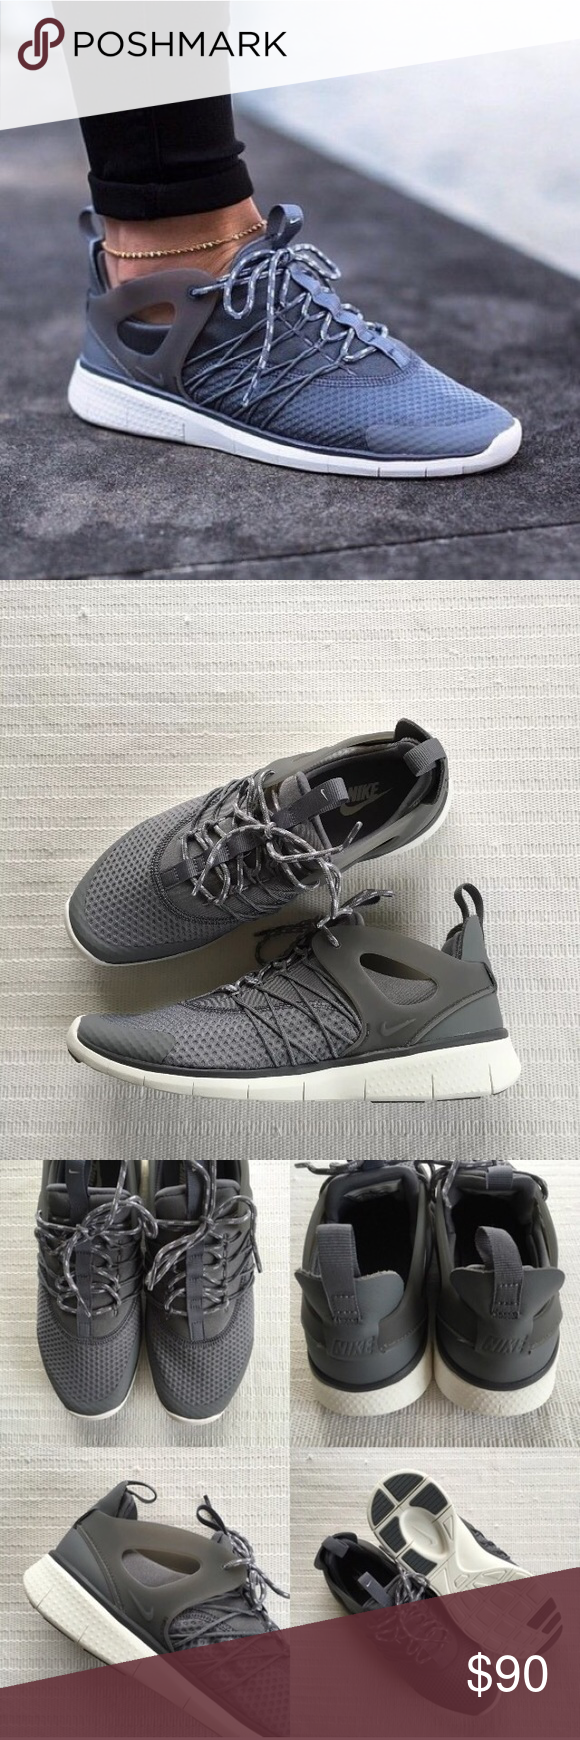 38d37aa1fd8f3 Women s Nike Free Viritous Grey Running Shoes Women s Nike Free Viritous  Grey Running Shoes Style Color  725060-004 • Women s size 8 • NEW in box  (no lid) ...